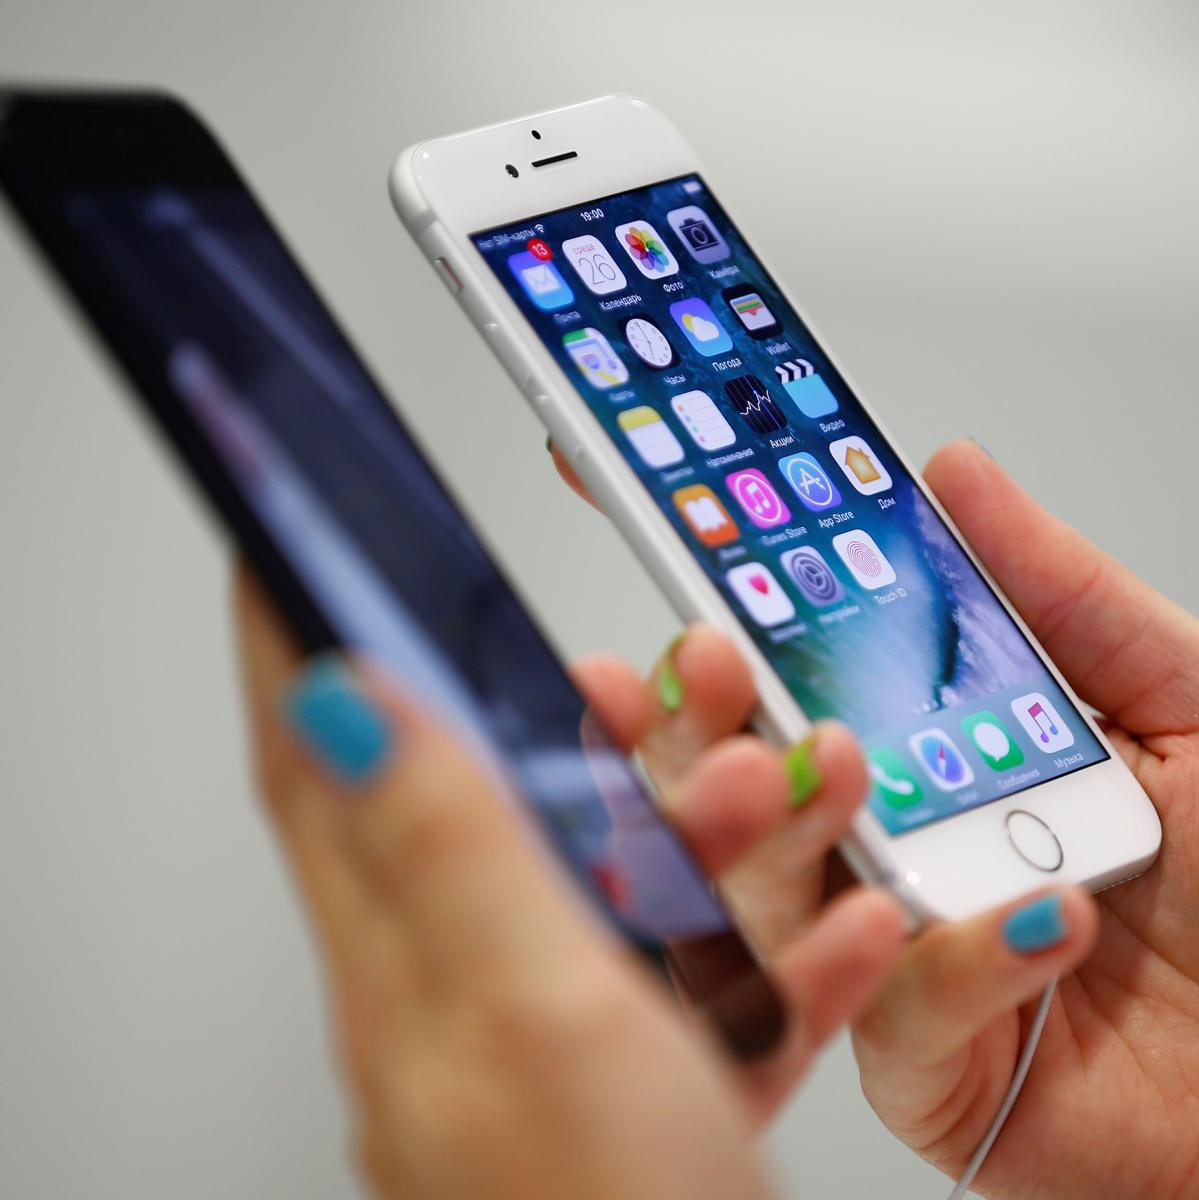 WARNING: Before you download that latest iPhone update, read this